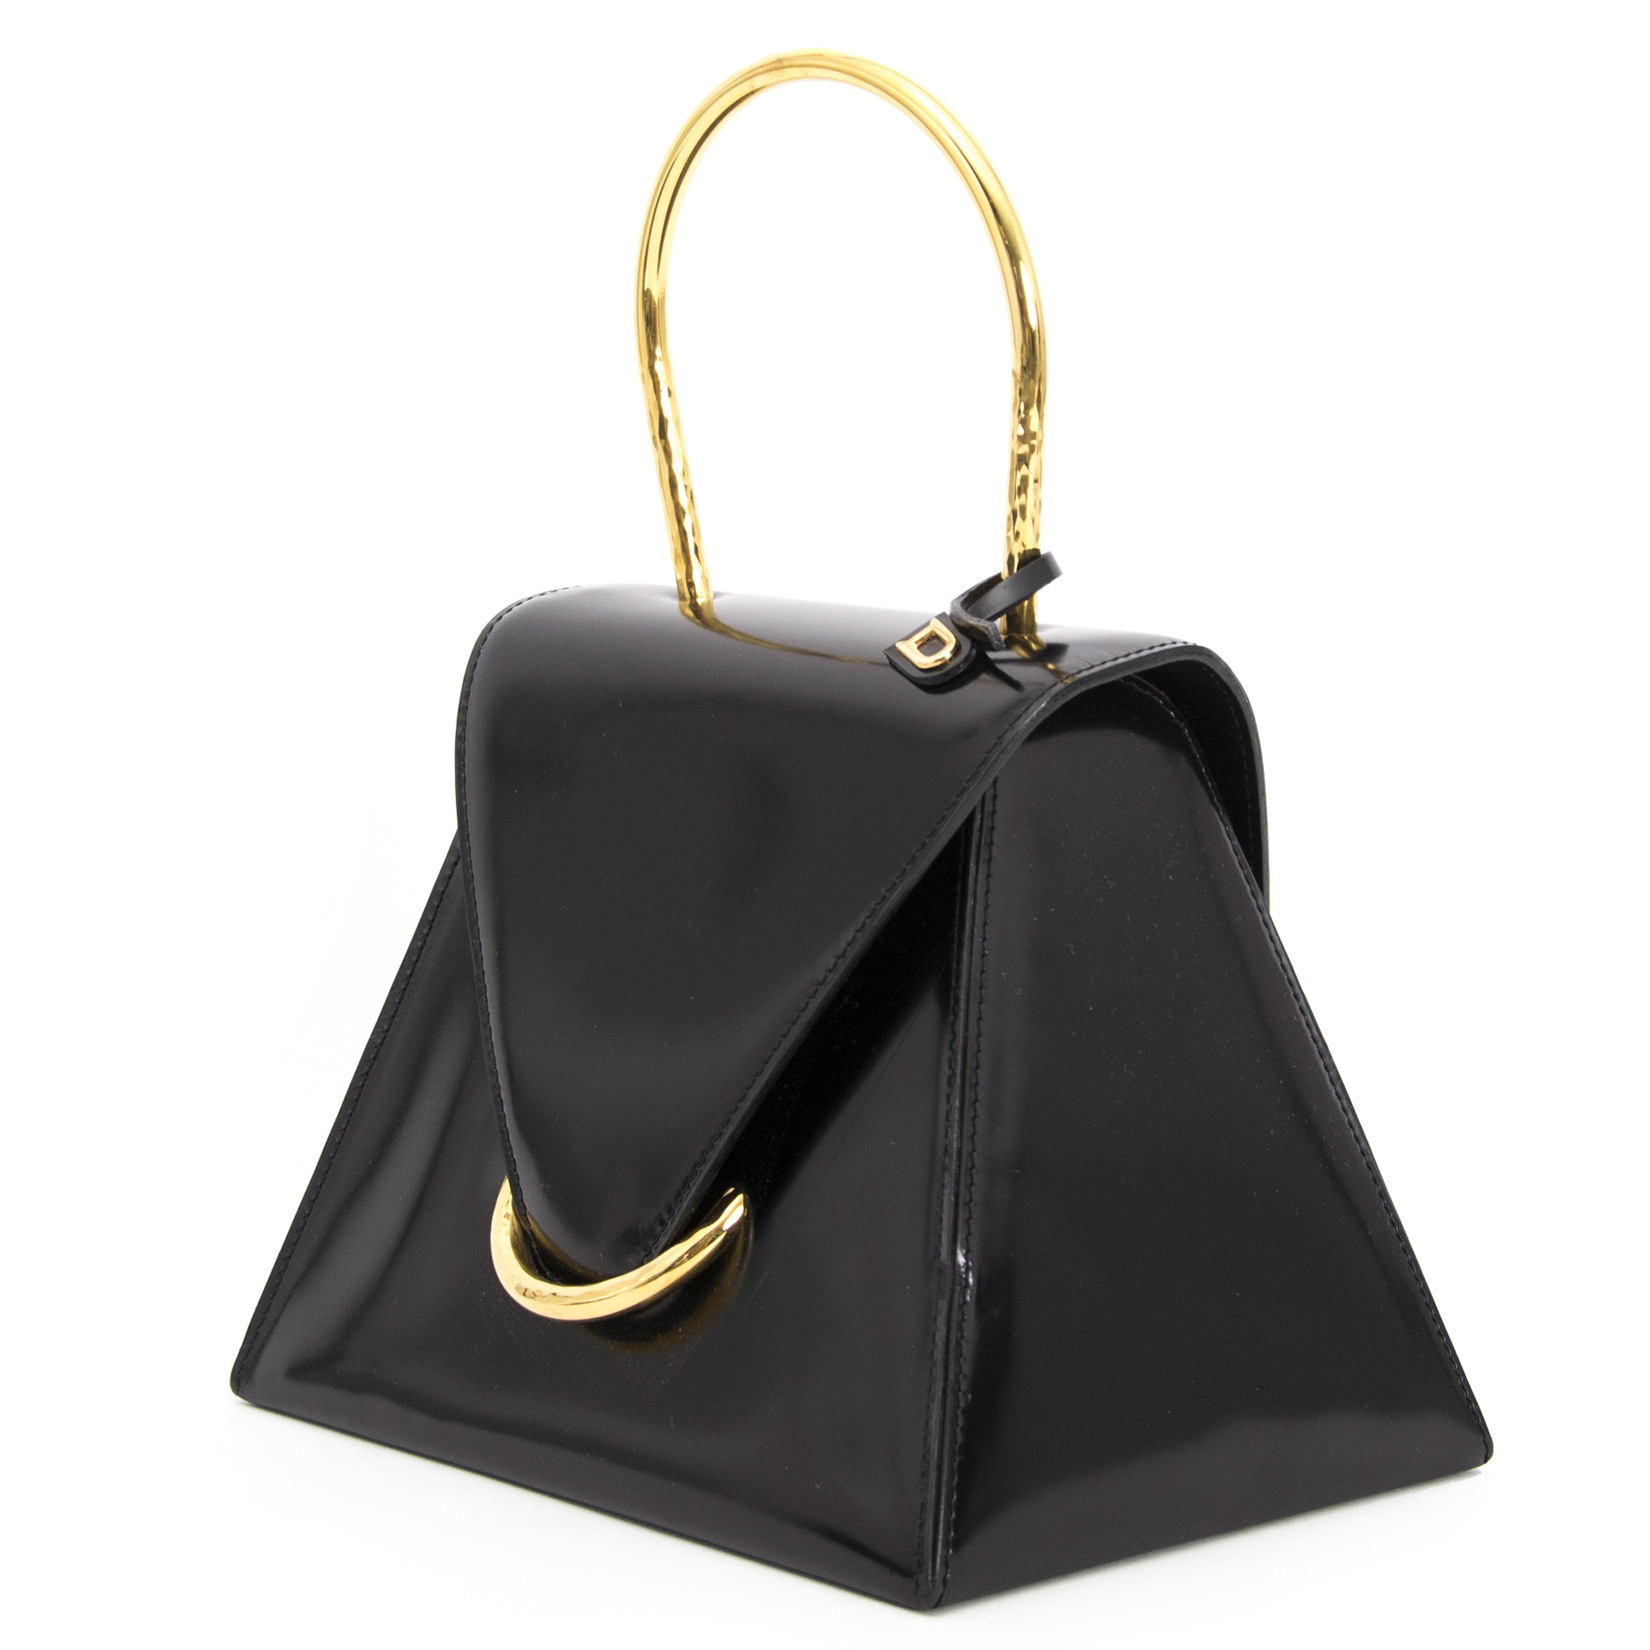 looking for a secondhand Delvaux Triangle Top Handle Bag